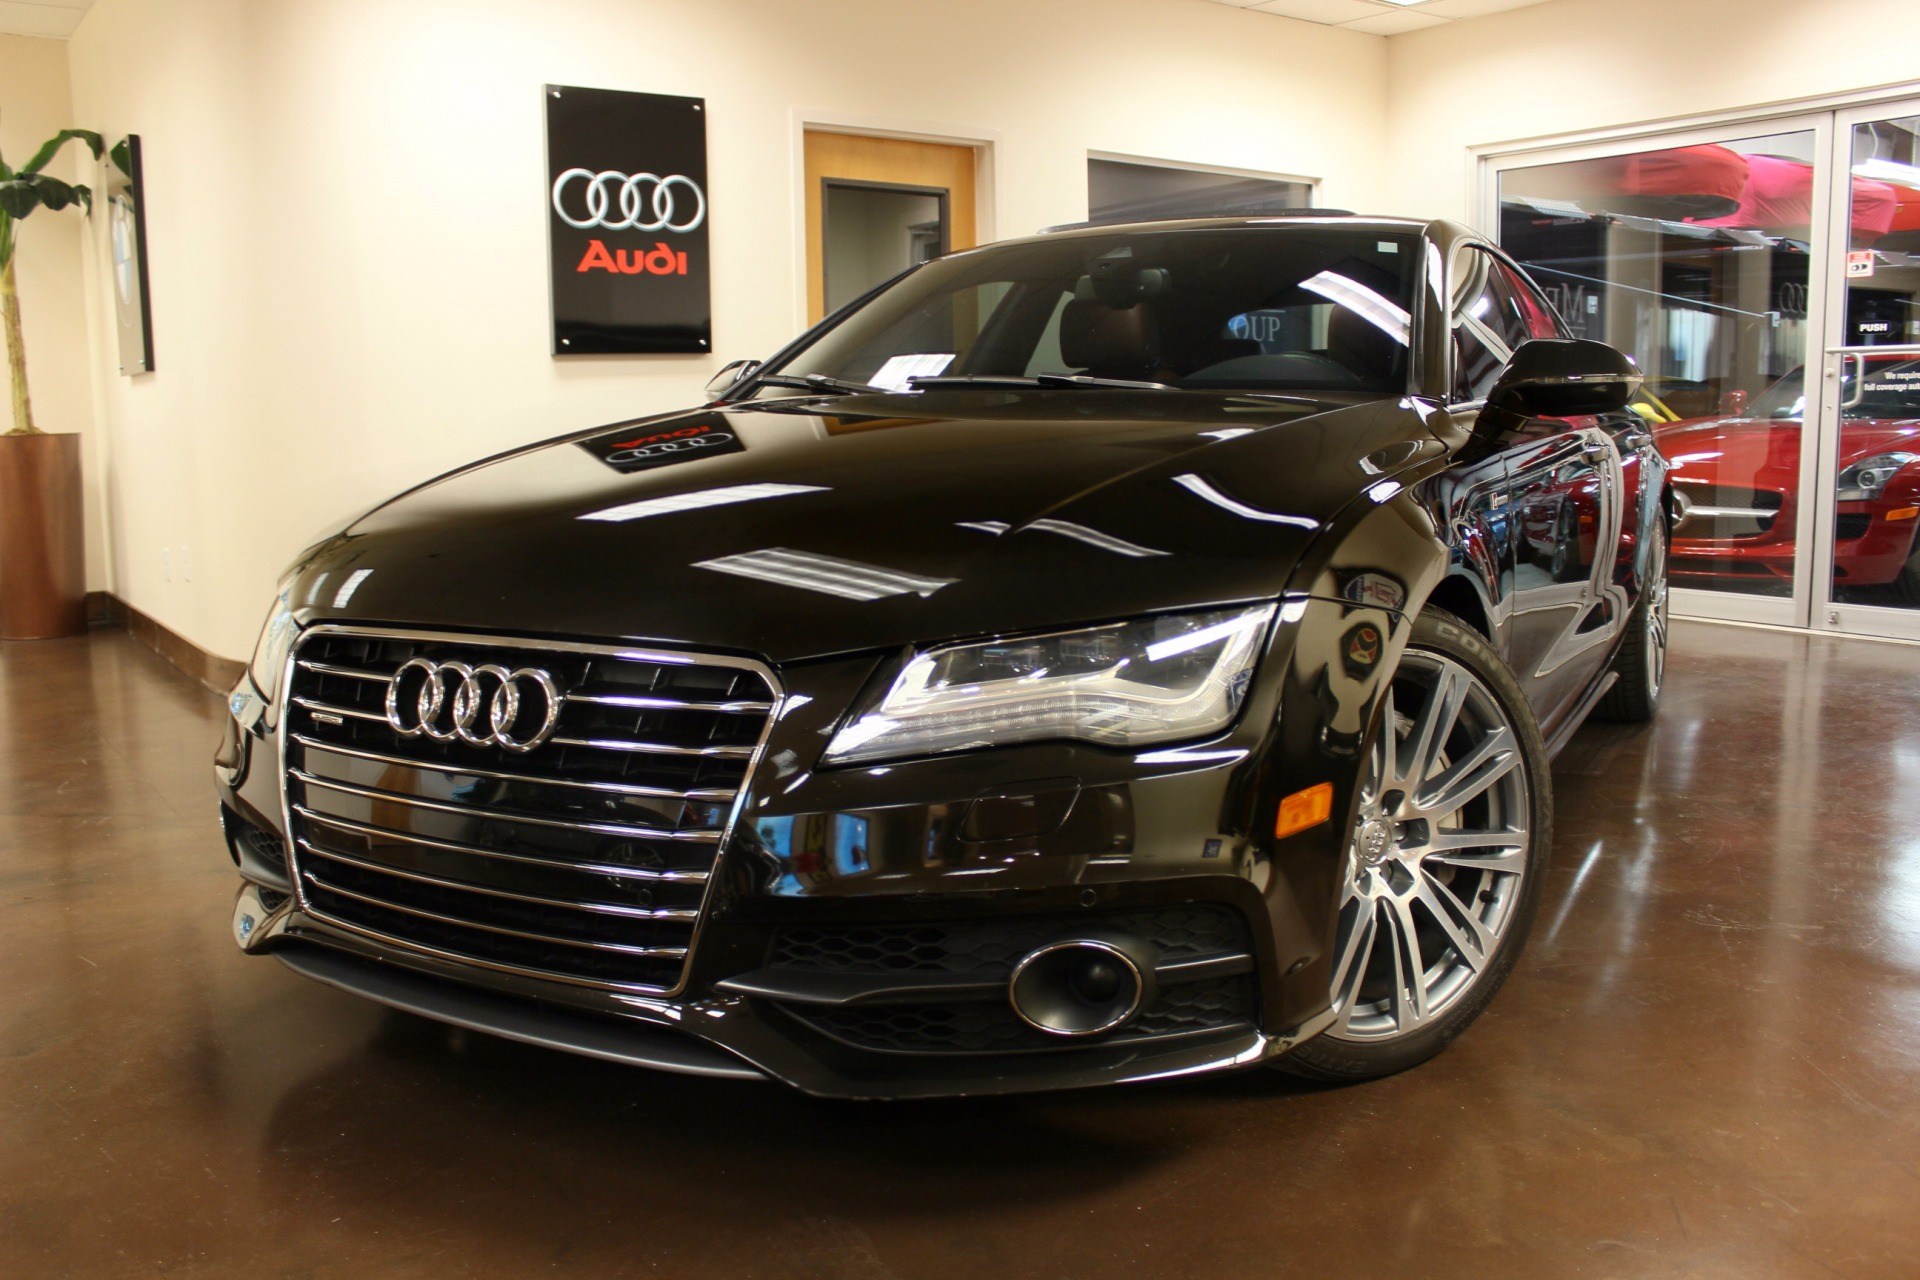 used 2013 audi a7 stock p3758a ultra luxury car from merlin auto group. Black Bedroom Furniture Sets. Home Design Ideas